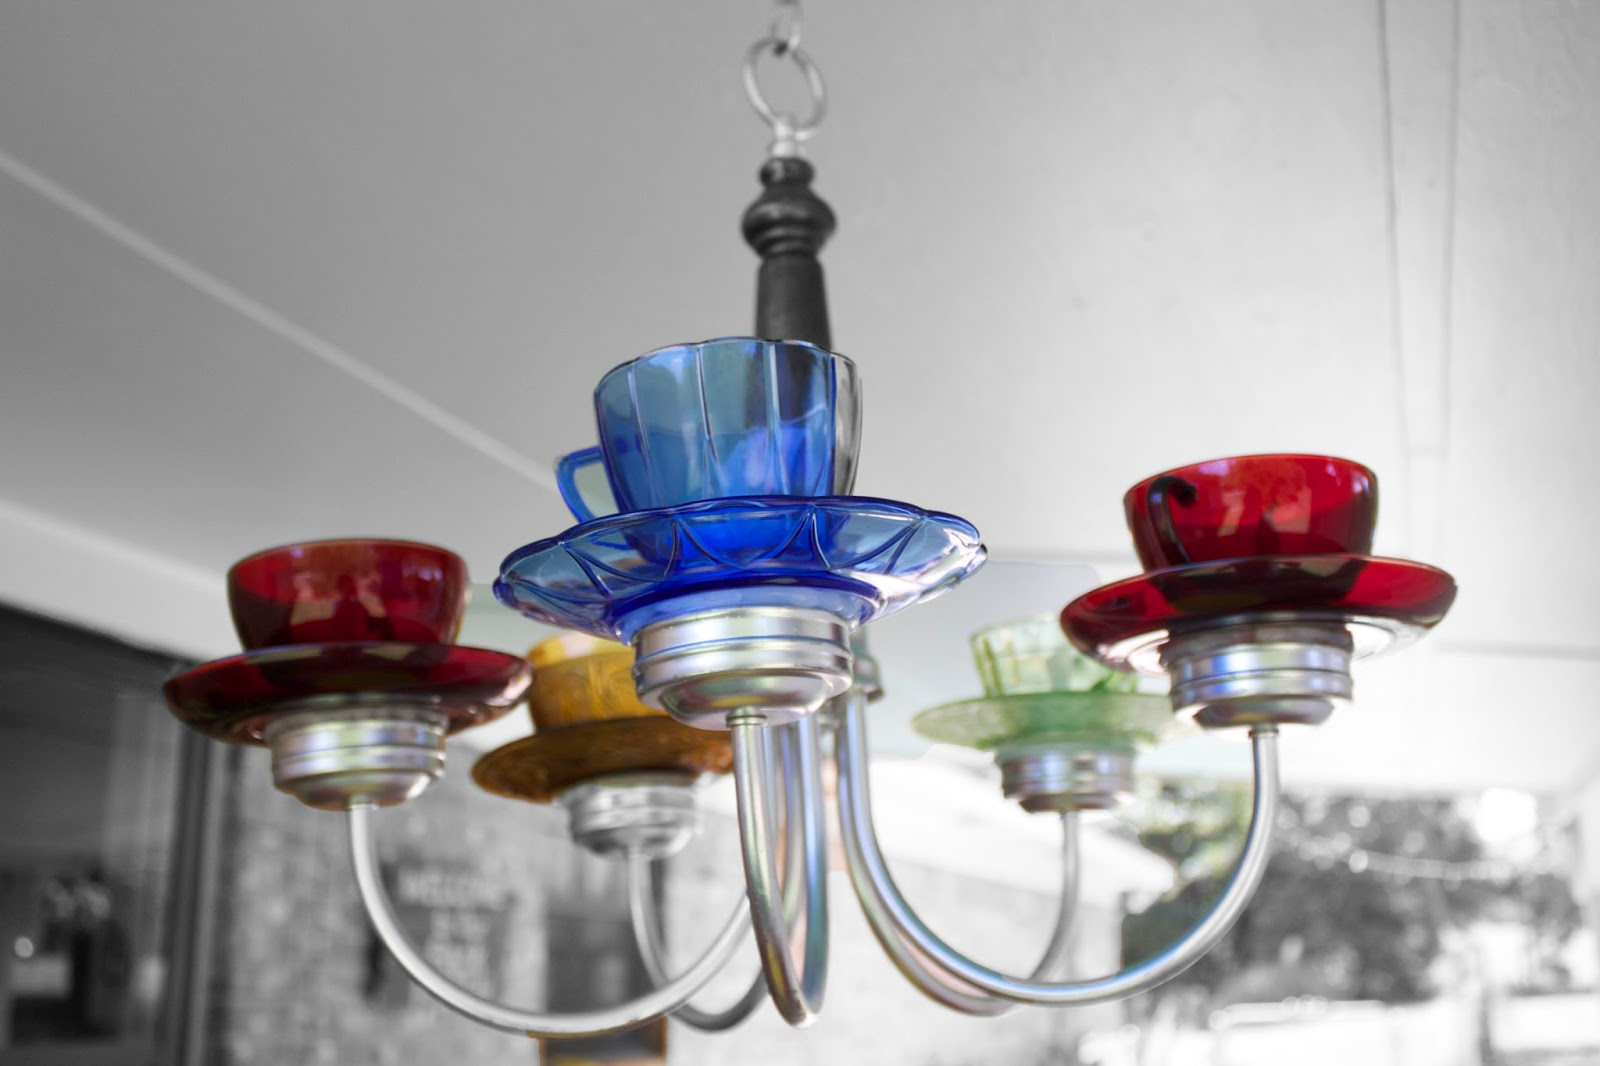 I Finally Finished The Teacup Chandelier M Loving It